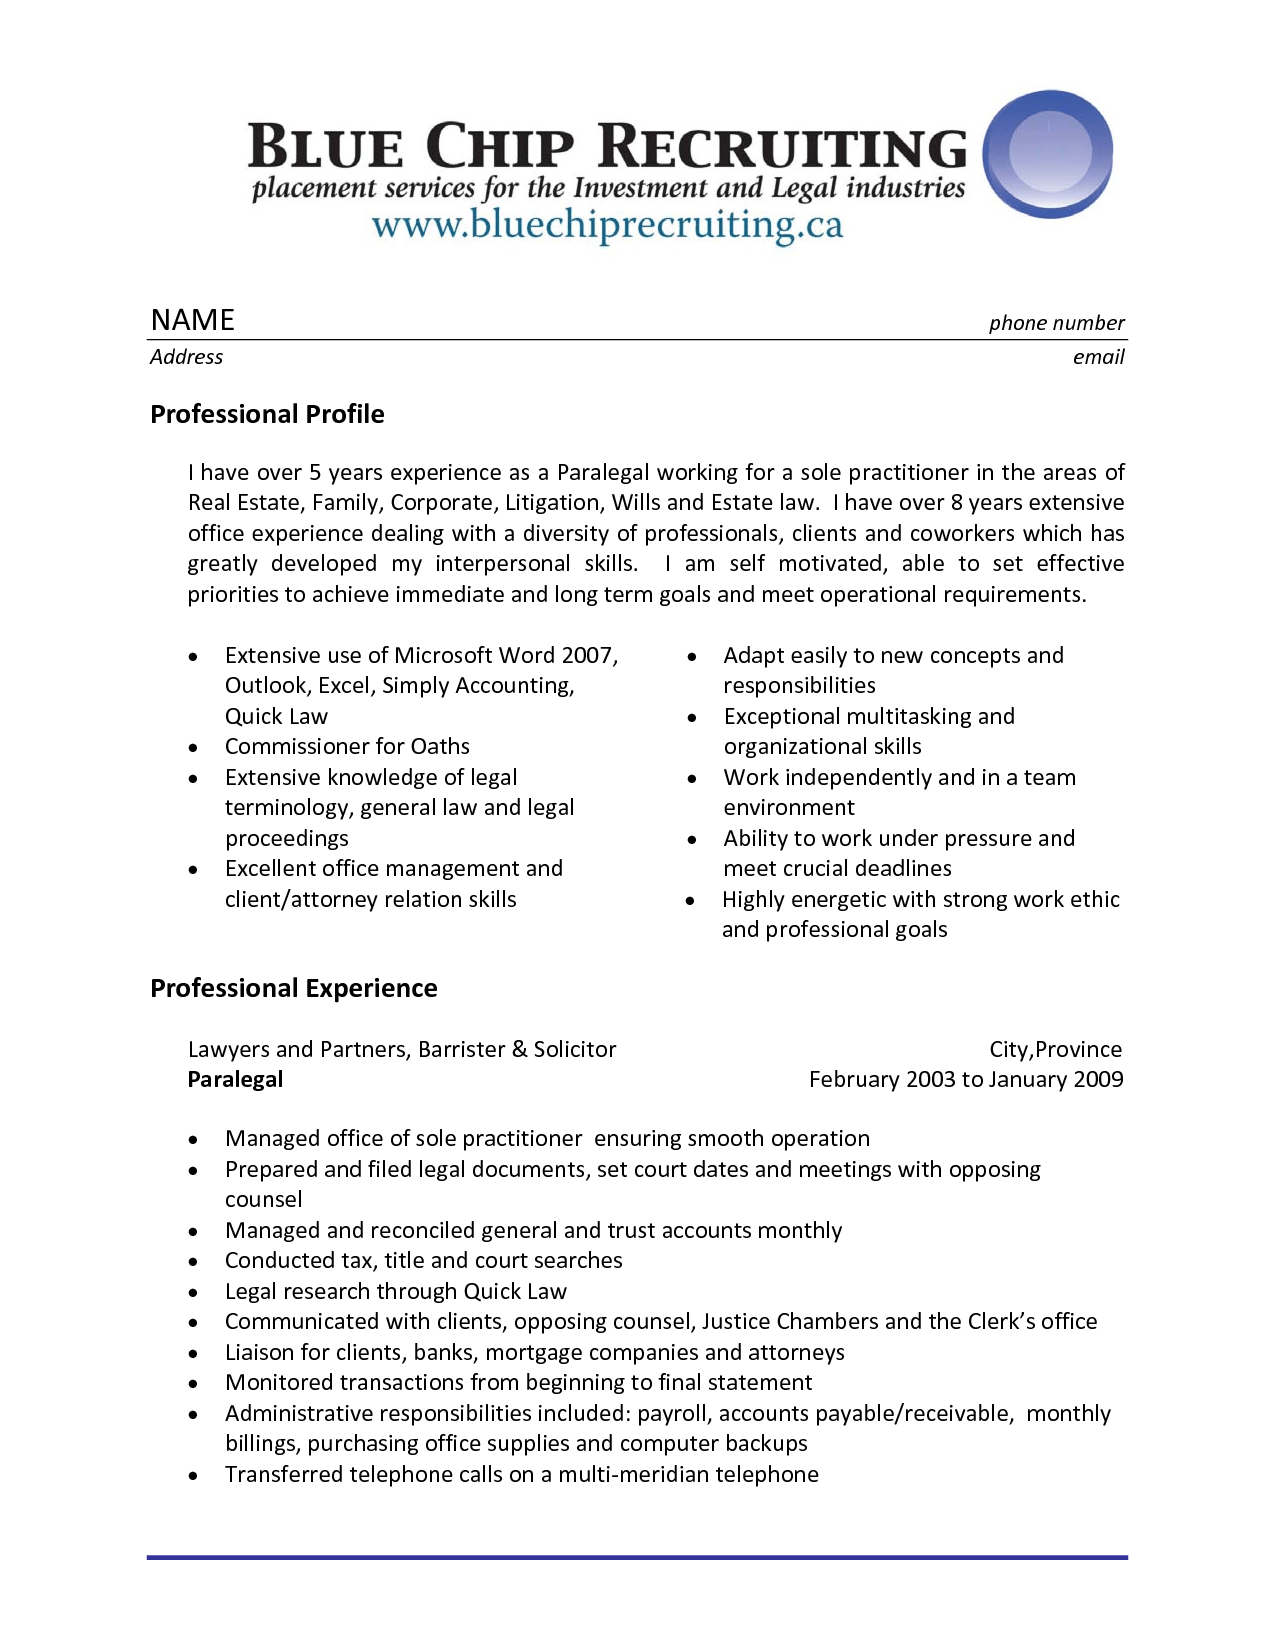 legal resume profile examples sample customer service resume legal resume profile examples writing career profile professional profile for your resume entry level legal administrative